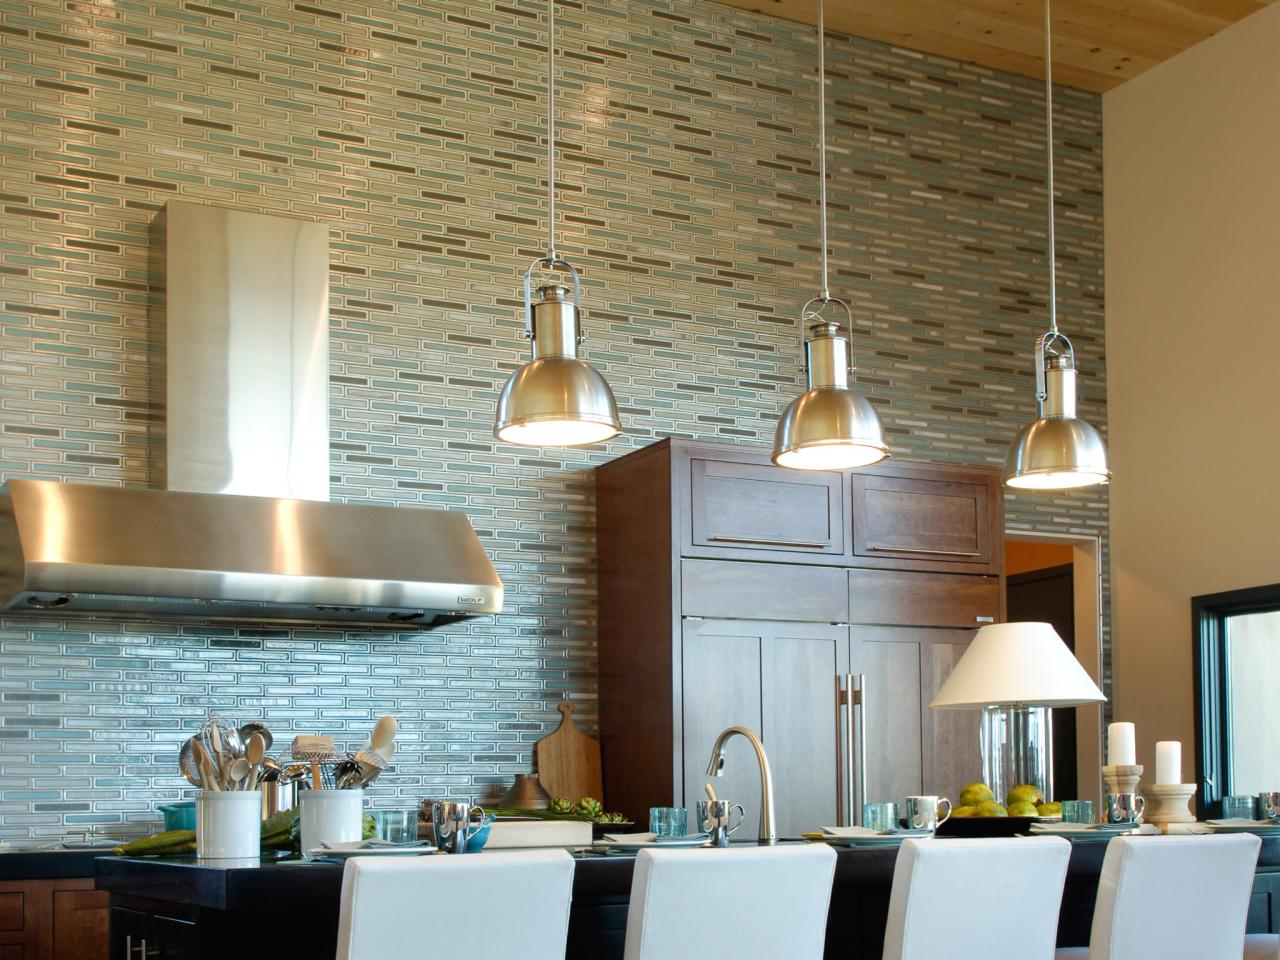 Matchstick Tile Kitchen Backsplash.